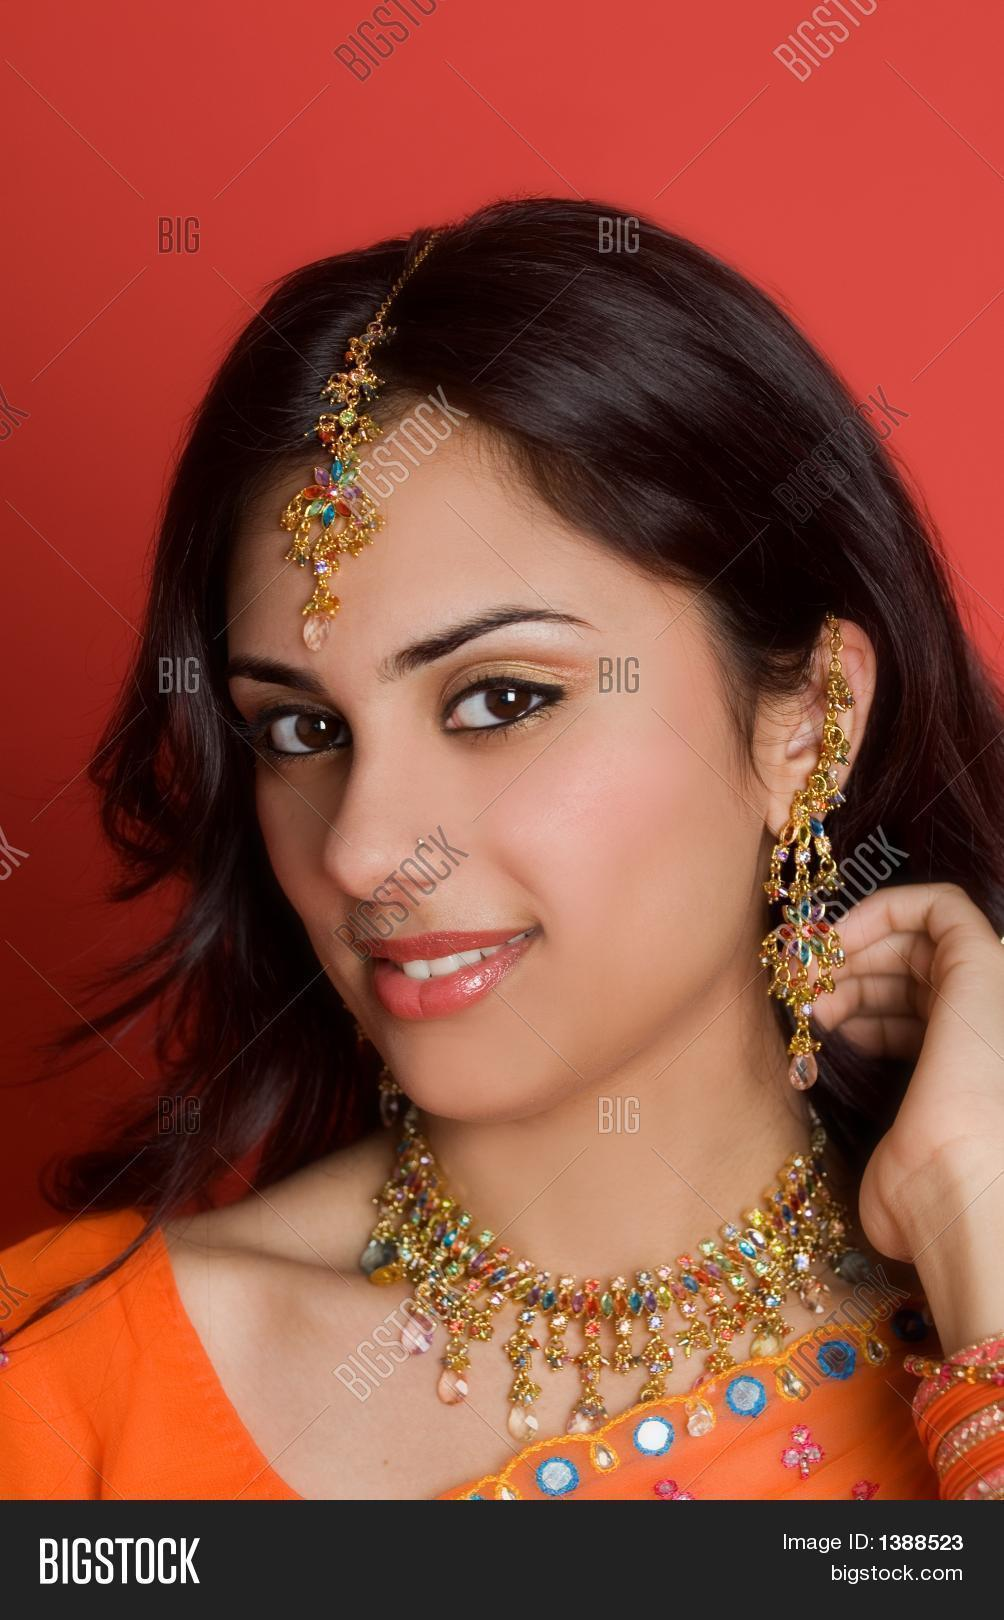 hindu single women in sayre Flirtcom is the premiere indian dating site have you ever tried an online dating site to meet indian men or women, only to be disappointed by the people you've met.